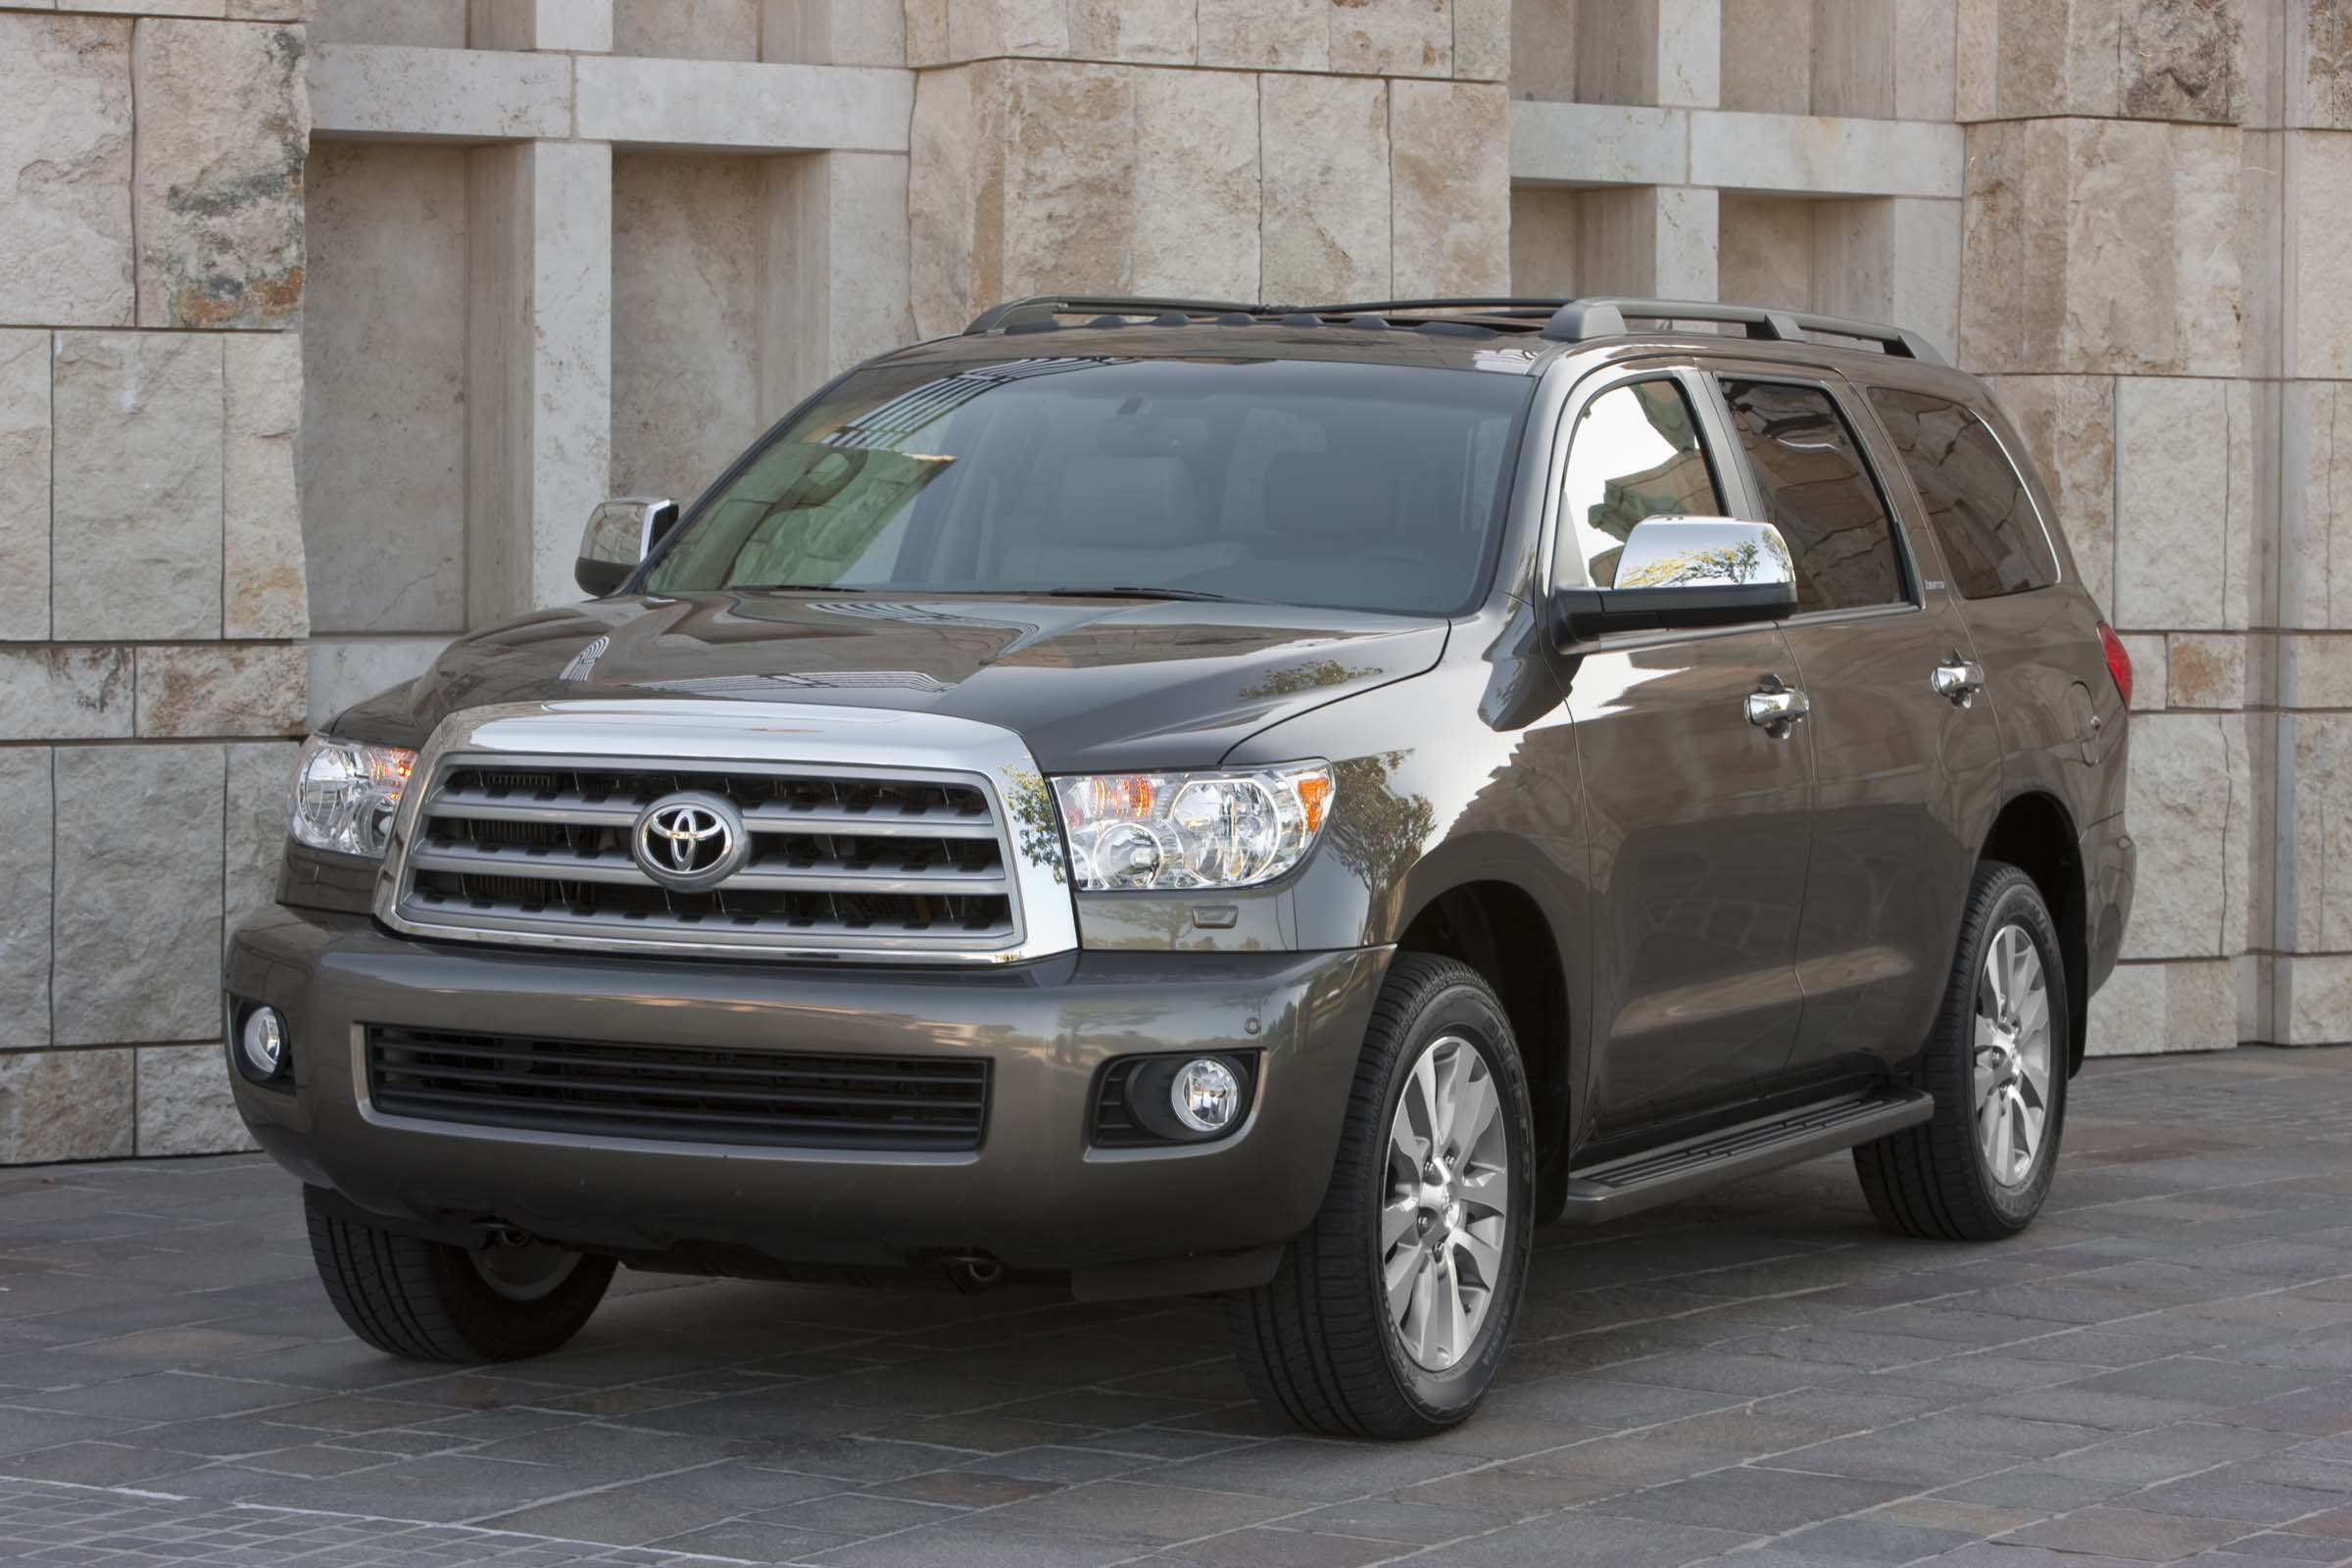 2013 toyota sequoia review top speed. Black Bedroom Furniture Sets. Home Design Ideas